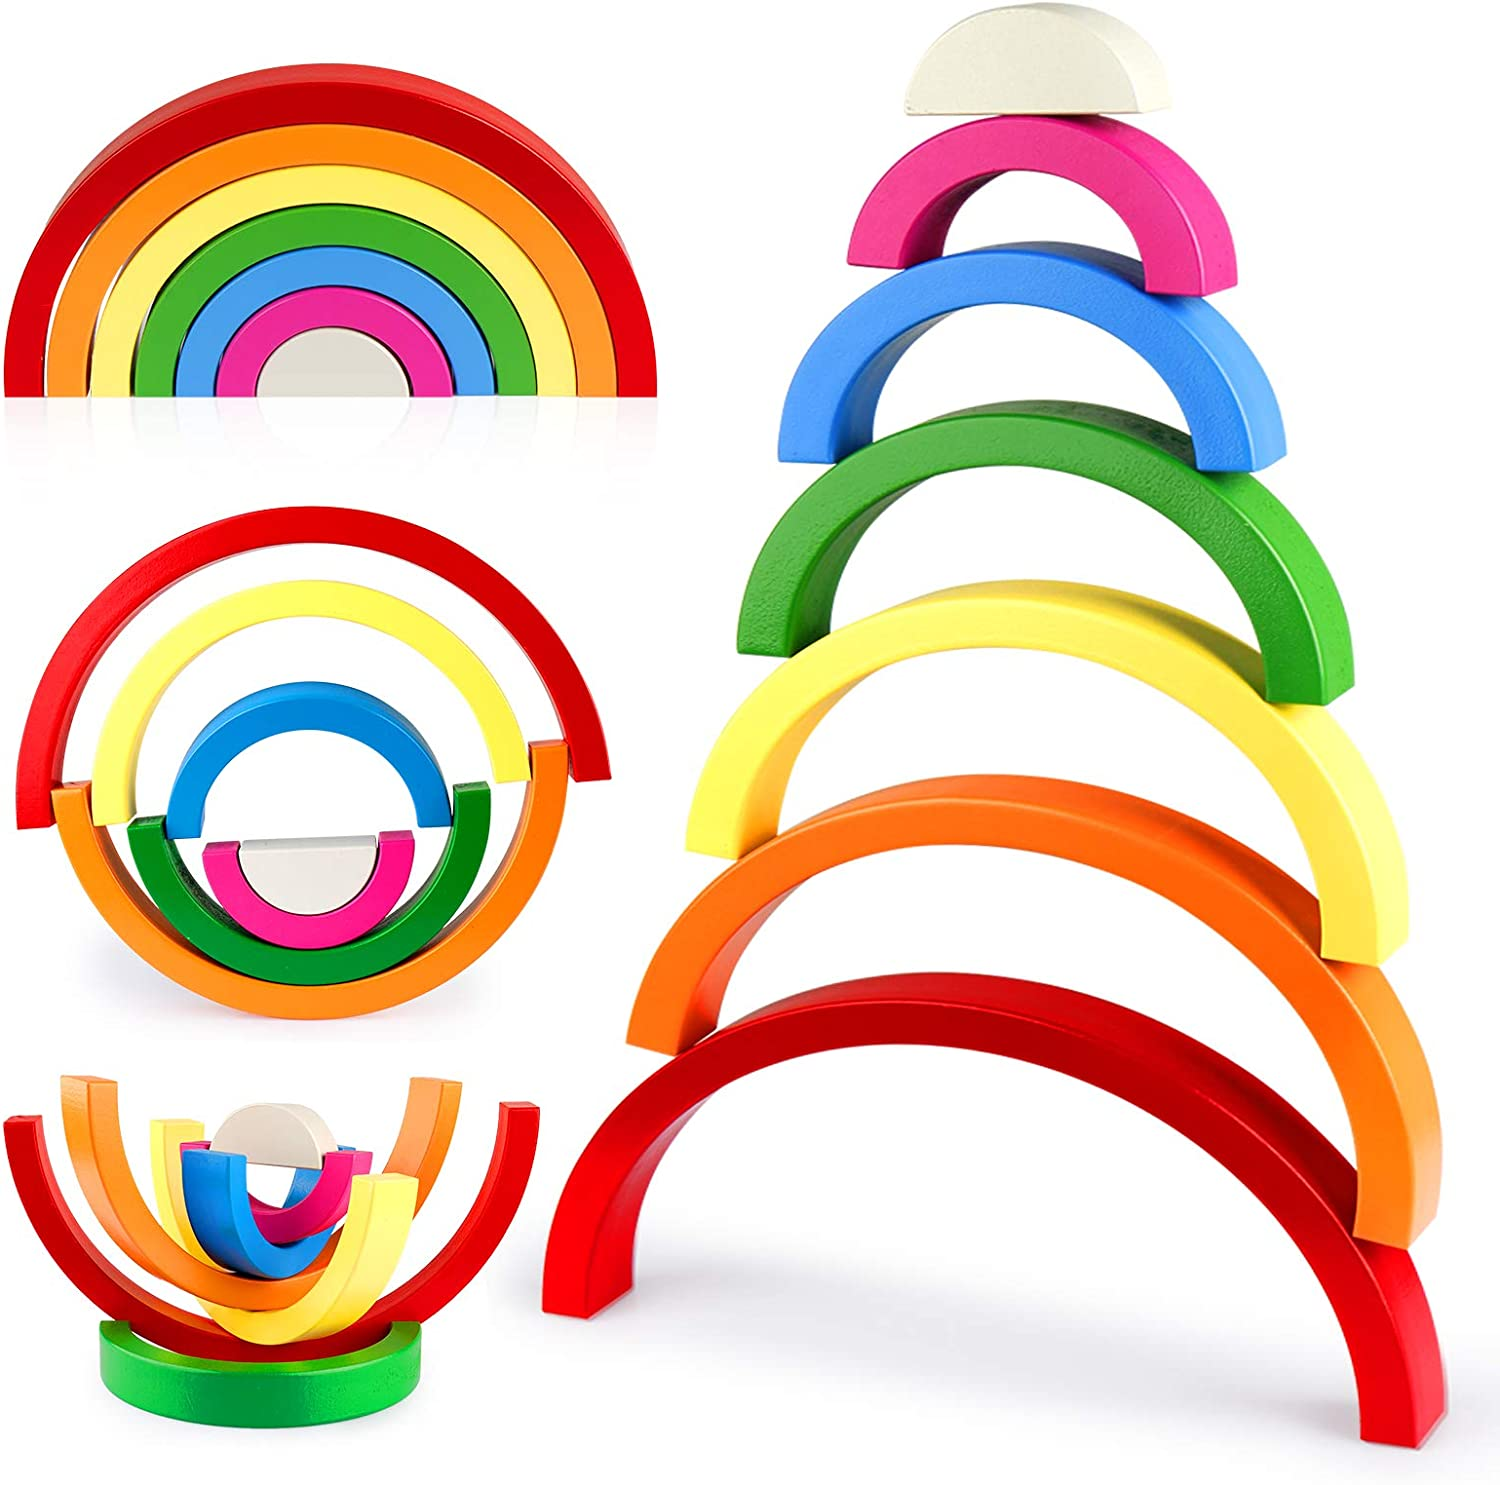 Vanmor Wooden Rainbow Stacker Toy, Wood Stacking Rainbow Puzzle Nesting Blocks, Educational Montessori Color Shape Sorting Game Fine Motor Skills Toys Gift for Kids Baby Toddlers